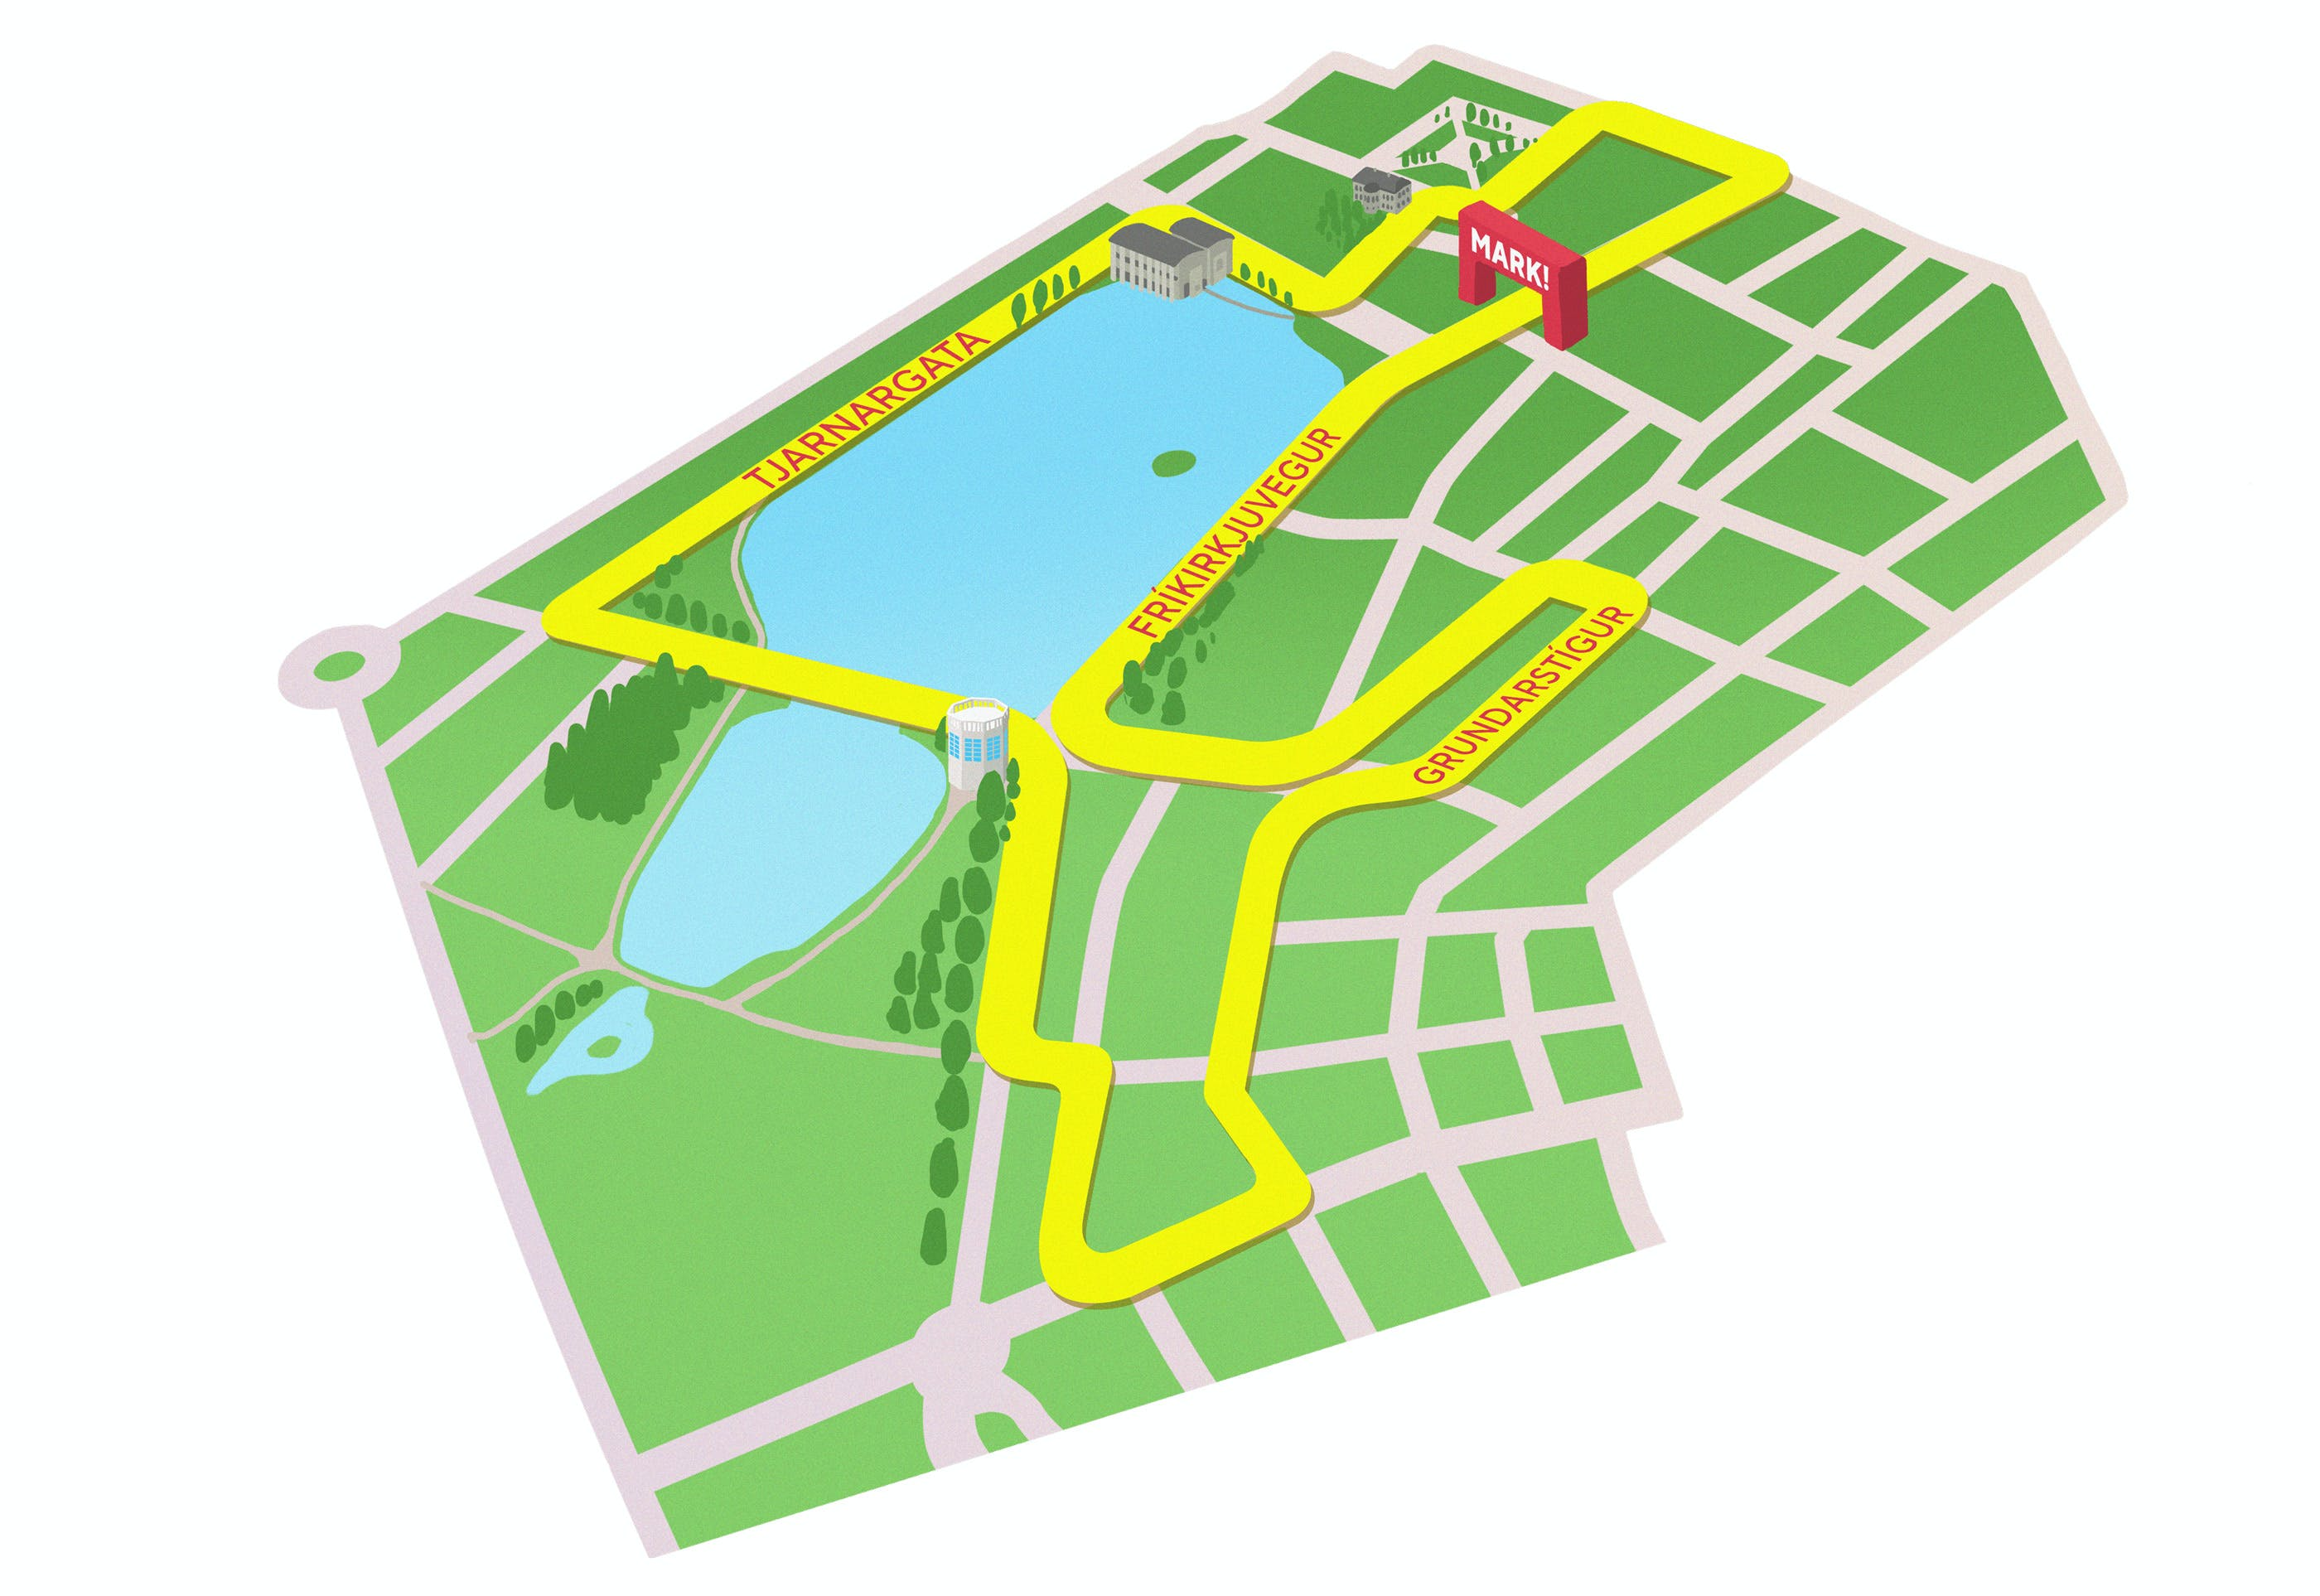 Map for the 3 km fun run